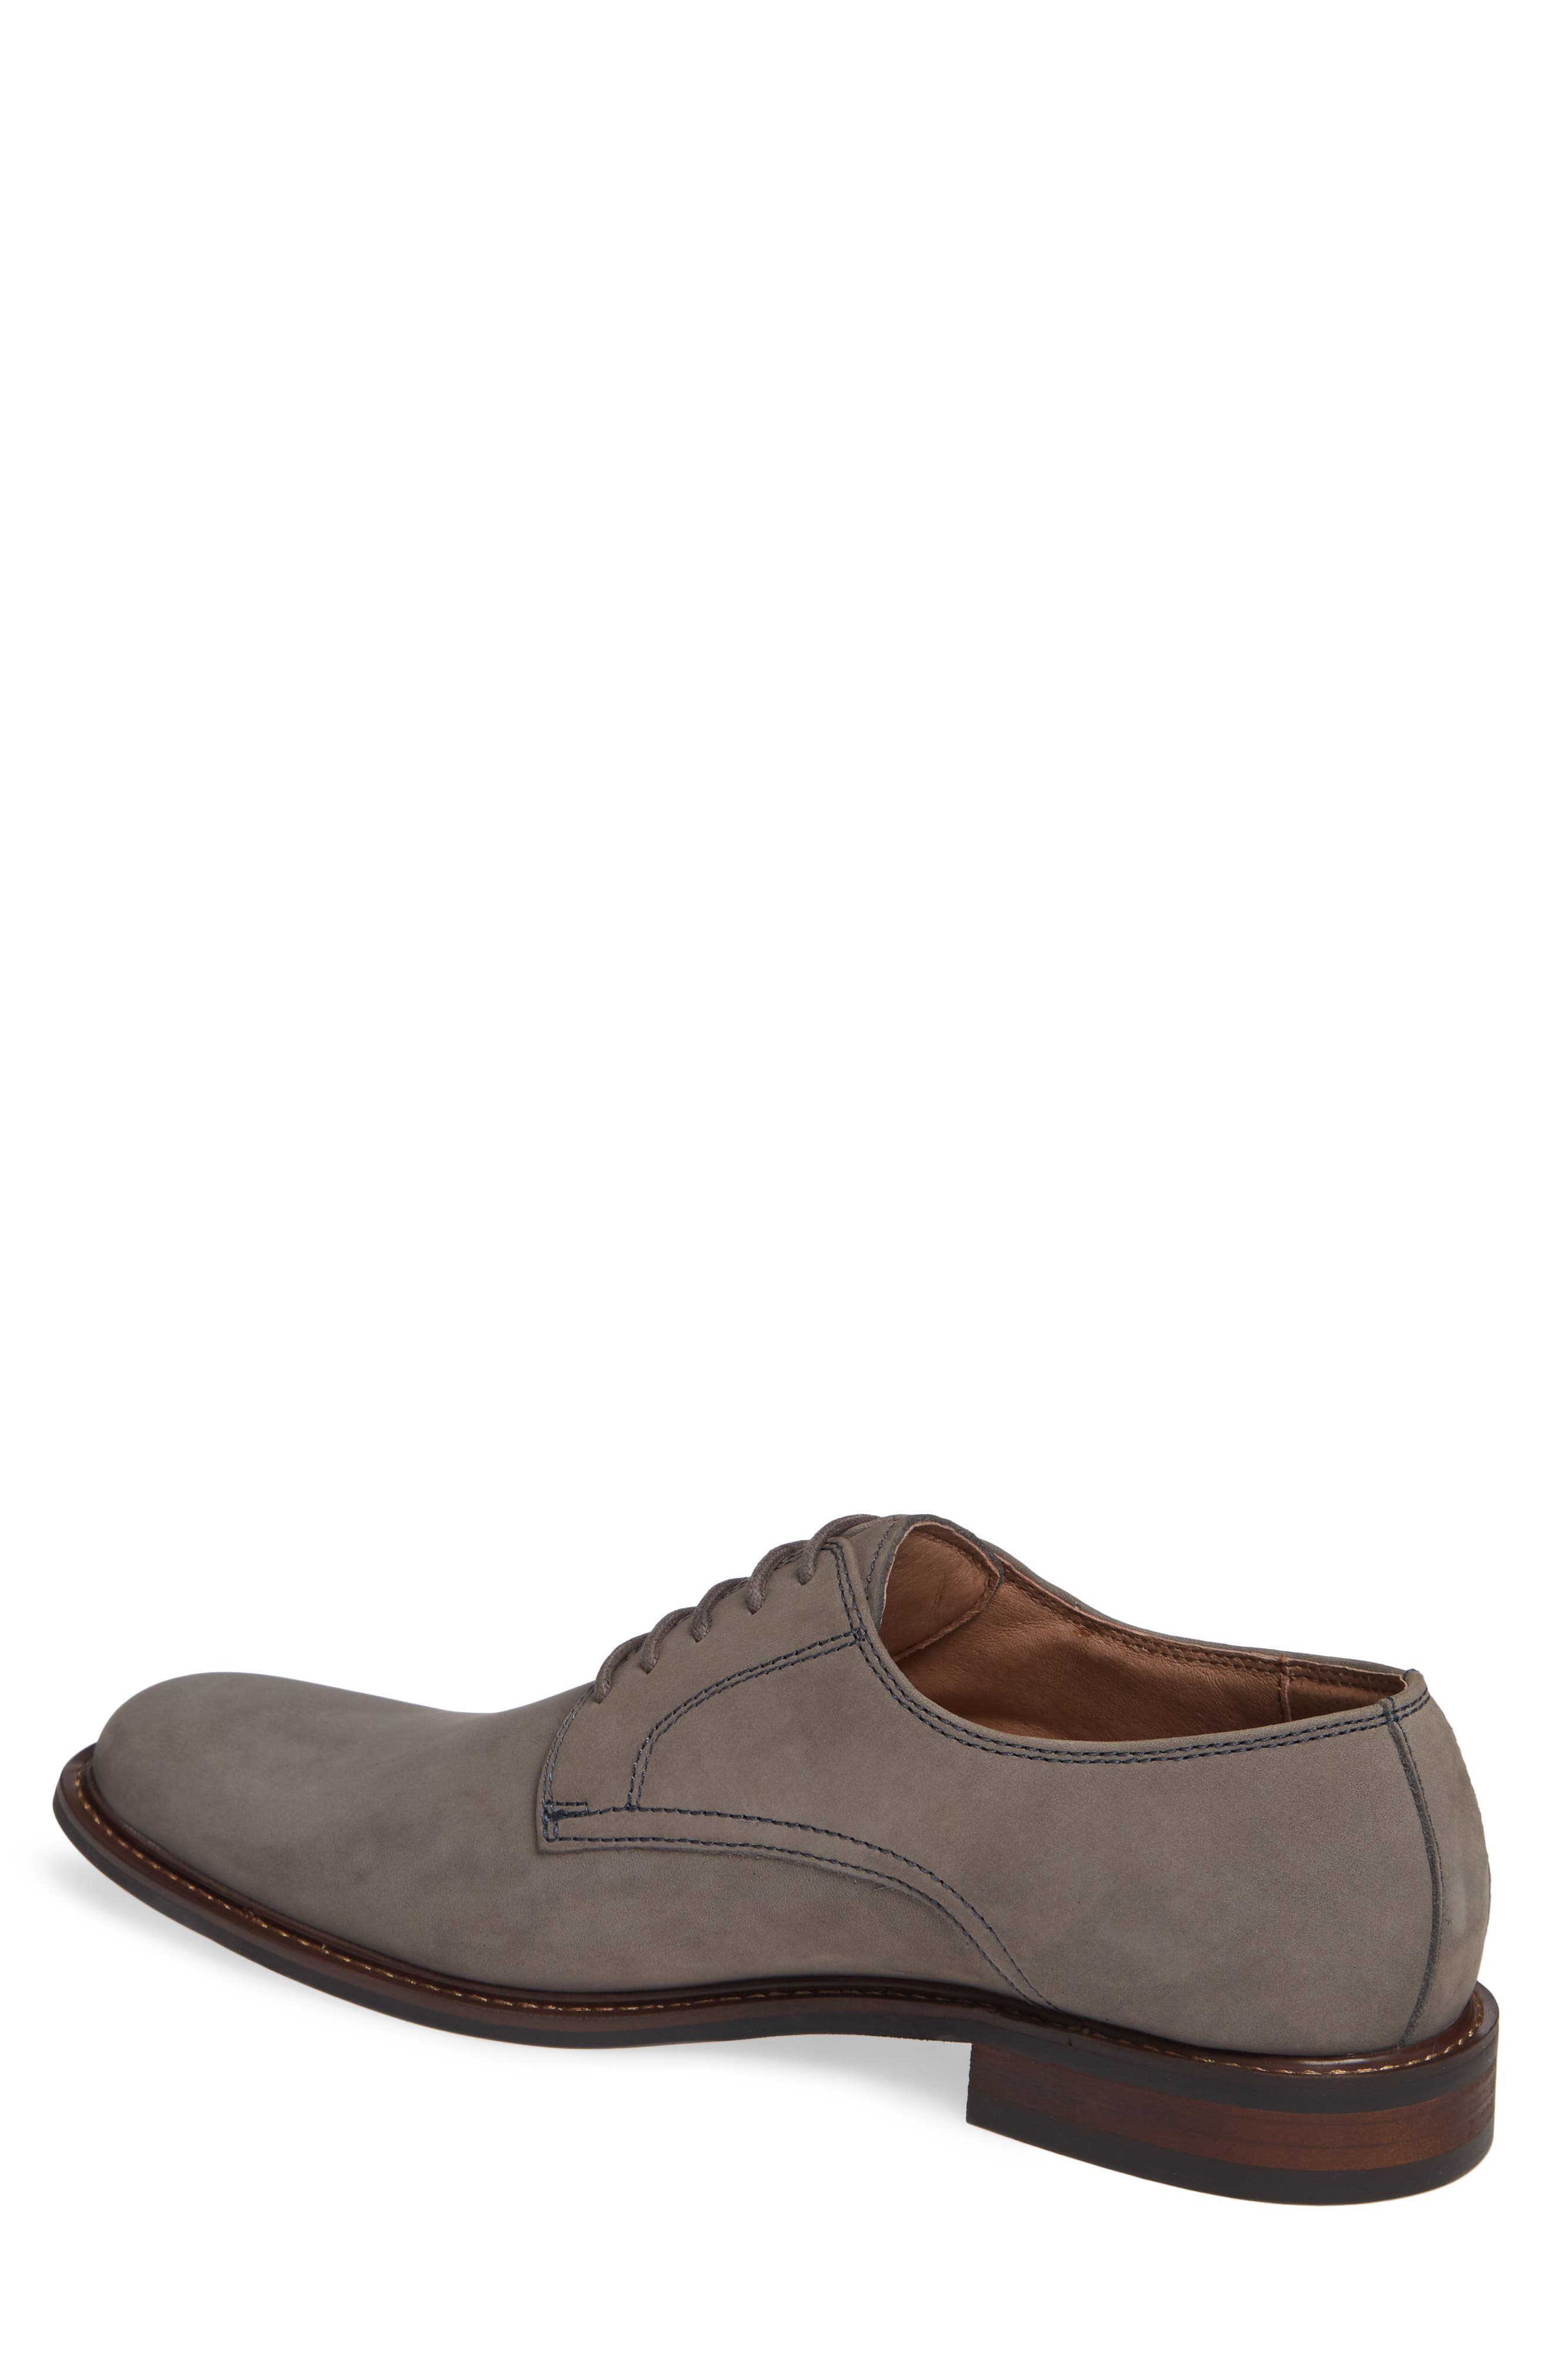 Richland Buck Shoe,                             Alternate thumbnail 2, color,                             GREY SUEDE